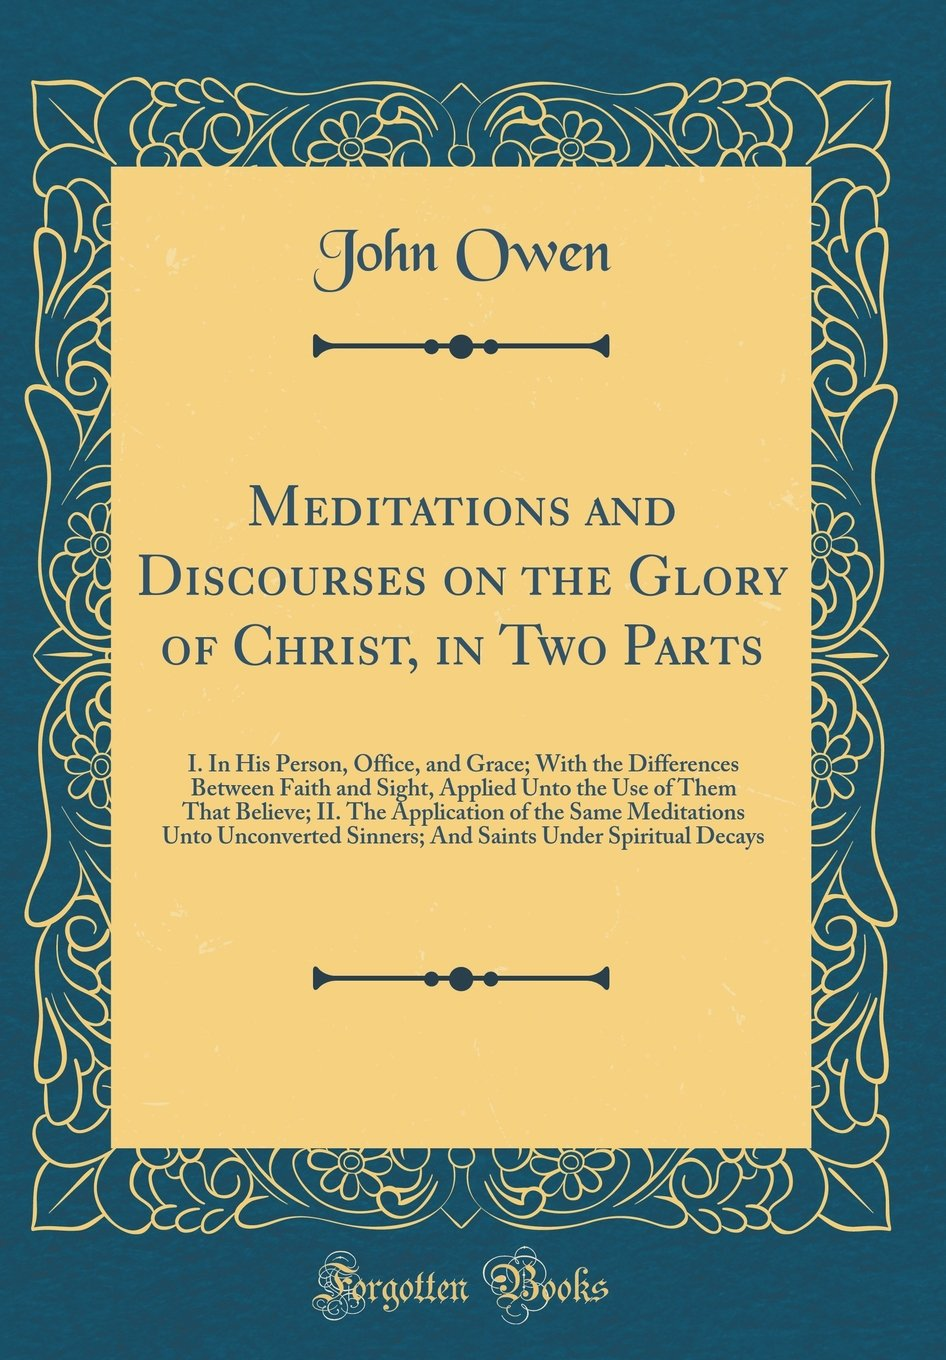 Read Online Meditations and Discourses on the Glory of Christ, in Two Parts: I. In His Person, Office, and Grace; With the Differences Between Faith and Sight, ... of the Same Meditations Unto Unconverted Sin pdf